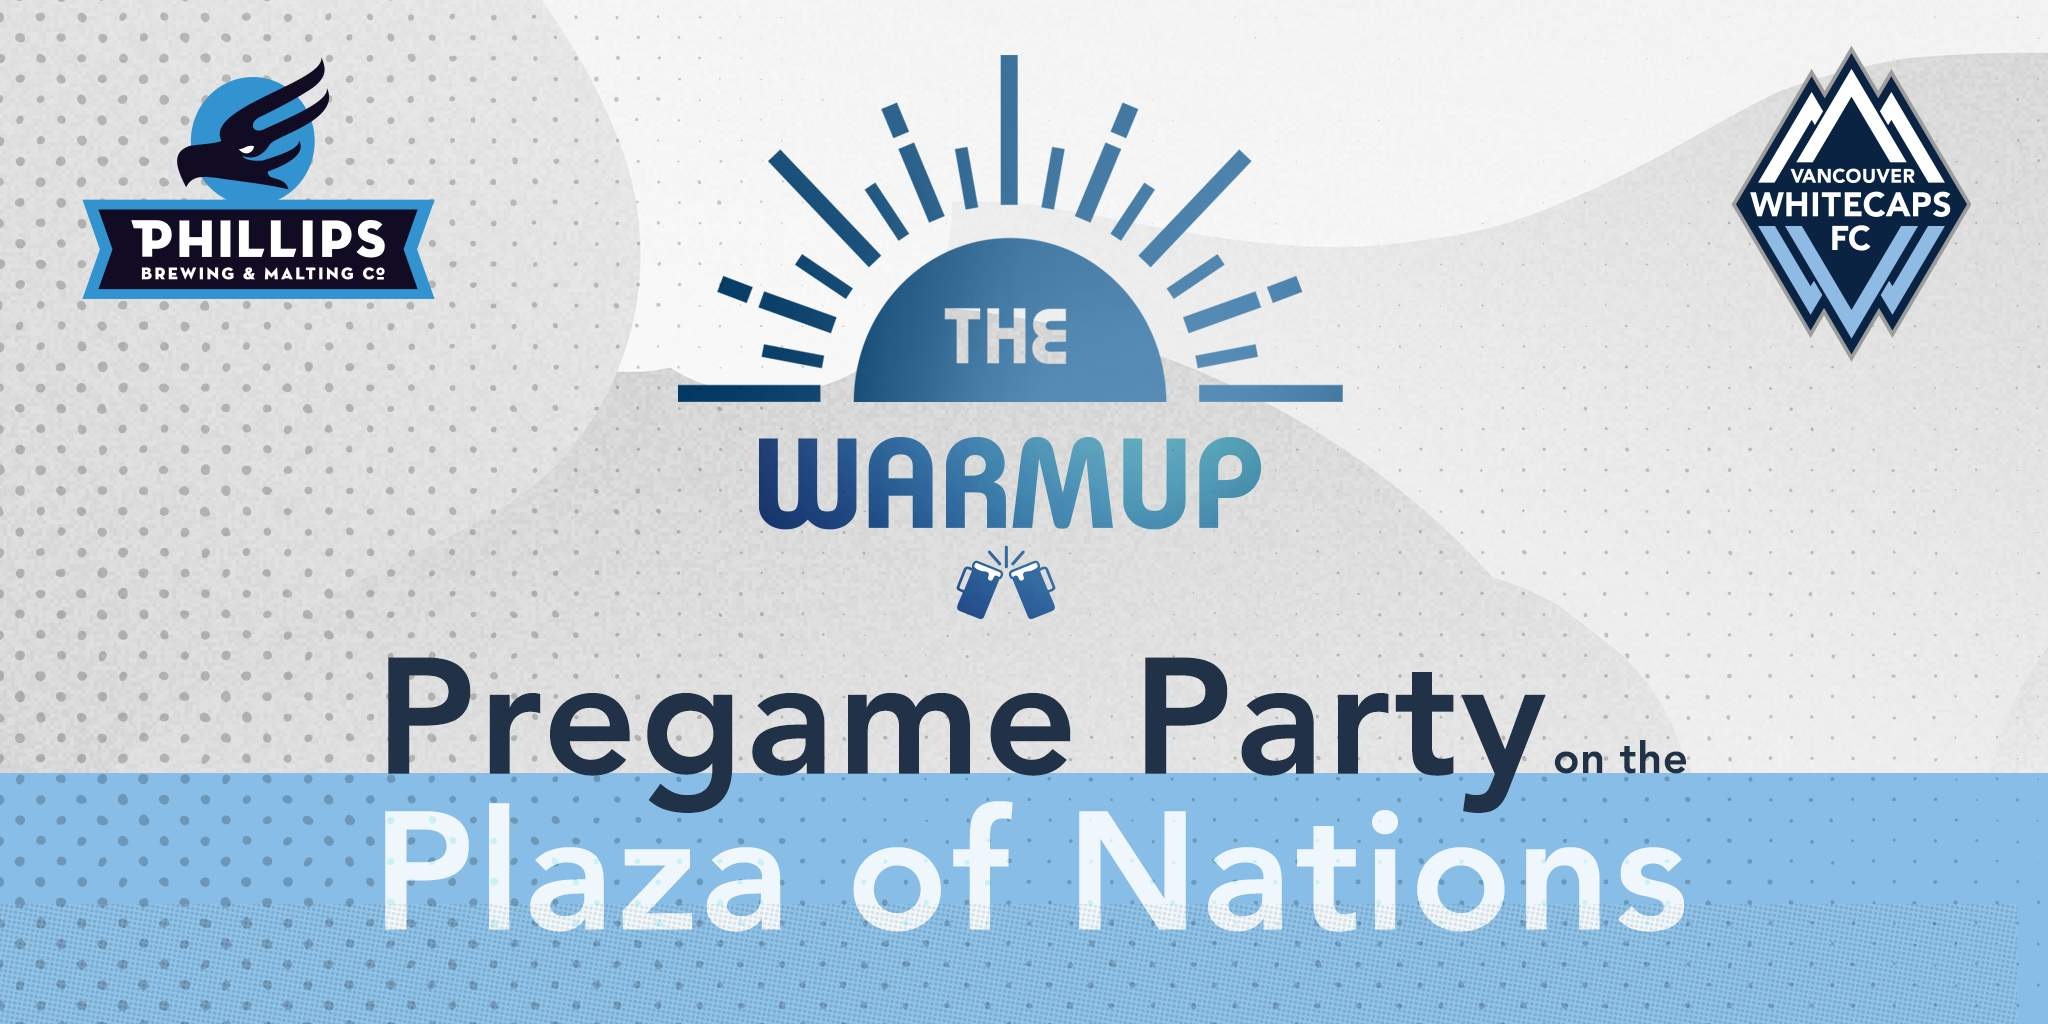 Vancouver Whitecaps FC And Phillips Beer Present The Warmup – Pregame Party On The Plaza Of Nations